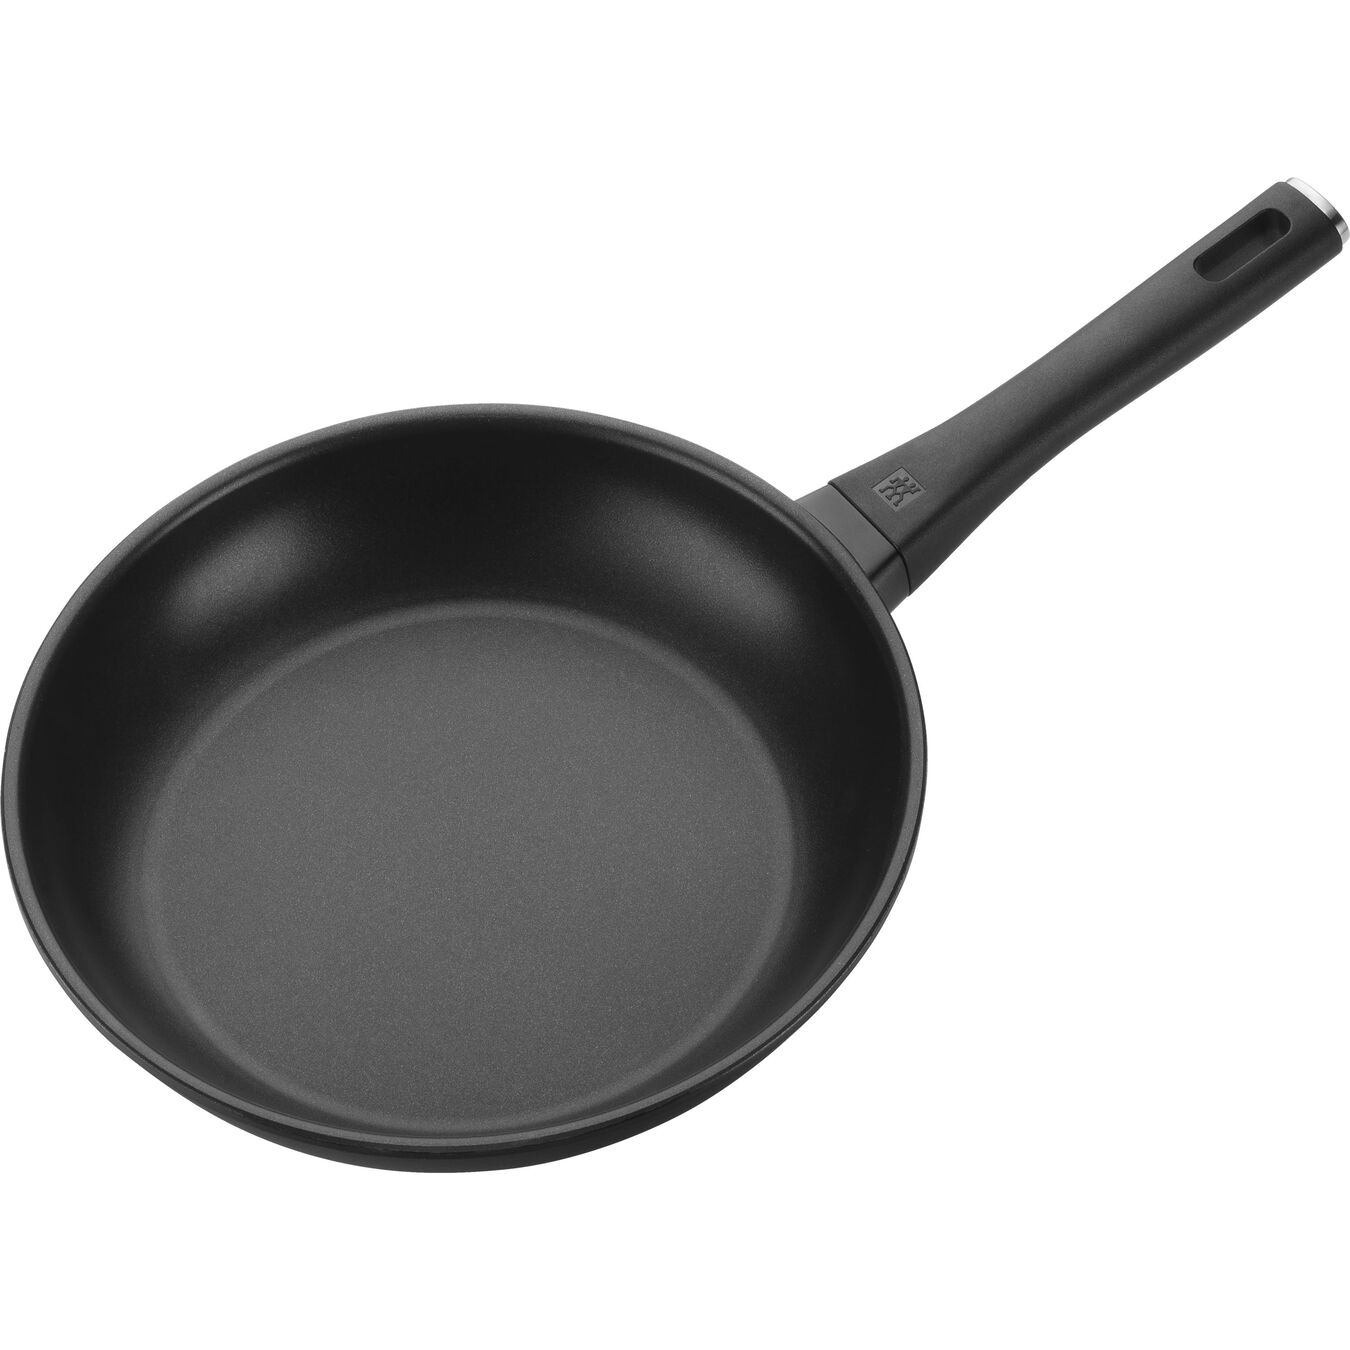 10-inch Nonstick Fry Pan,,large 7